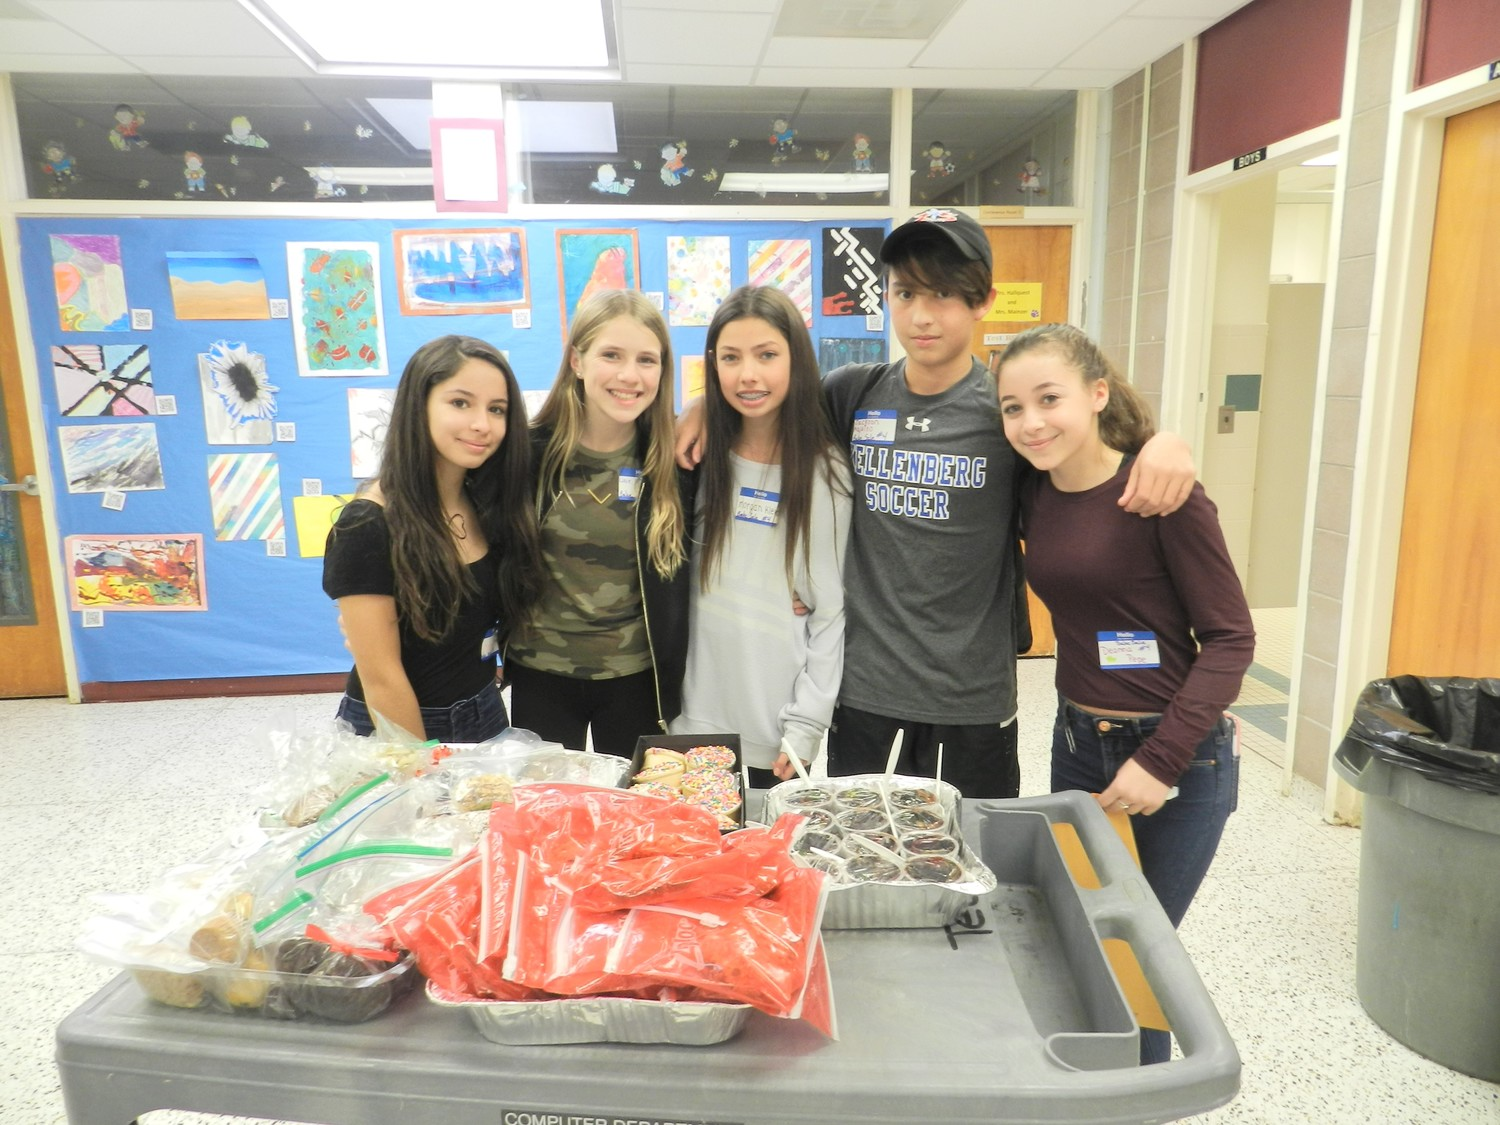 Eight graders Chiara Marzovilla, far left, Lillie DiStefano, Morgan Klein, Jackson Aquino, and Deanna Pepe sold baked goods to raise money for hurricane relief.